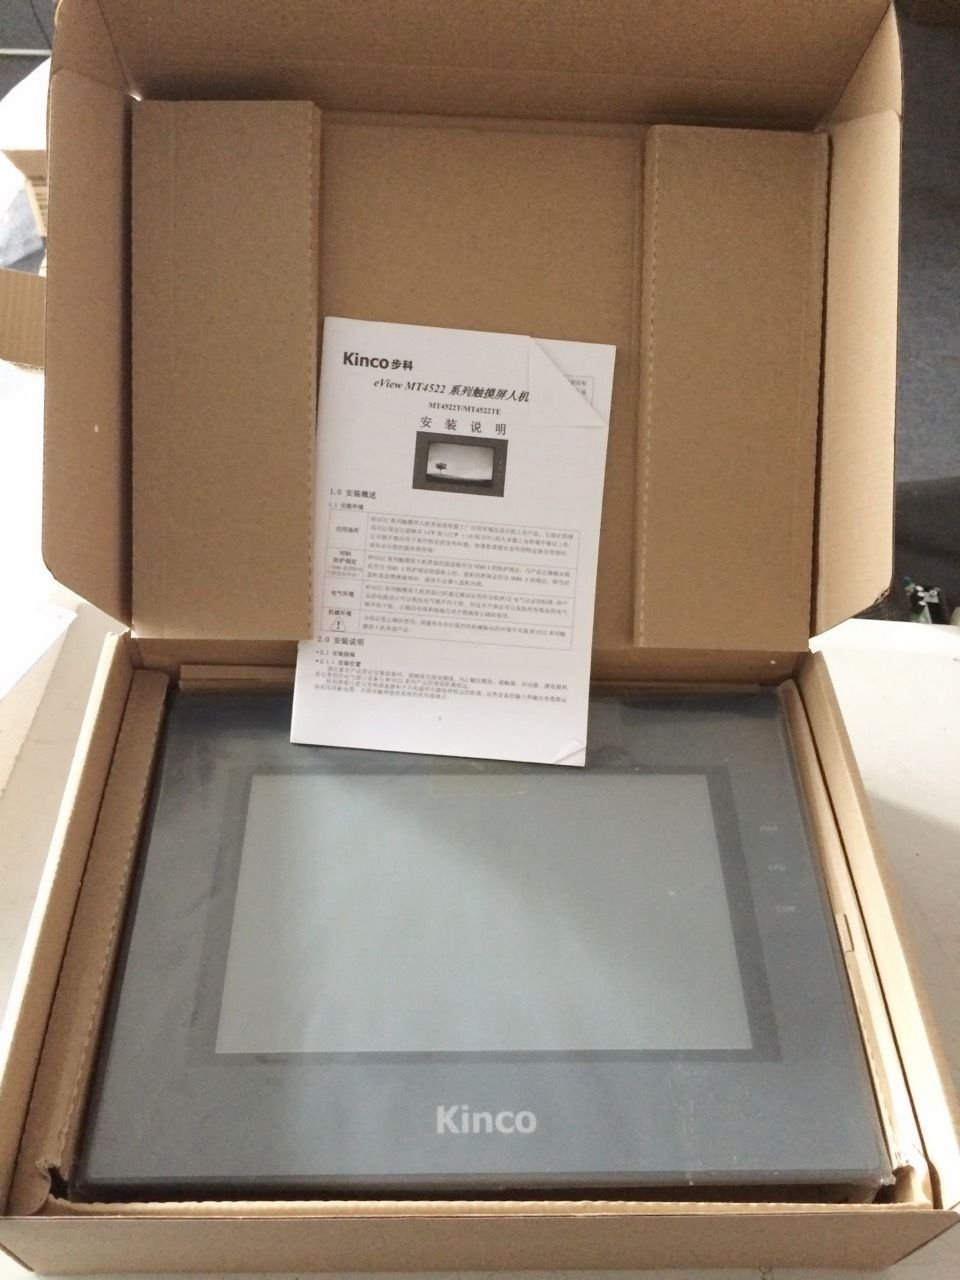 MT4522T Kinco HMI Touch Screen 10.1 inch 800*480 with program cable new in box